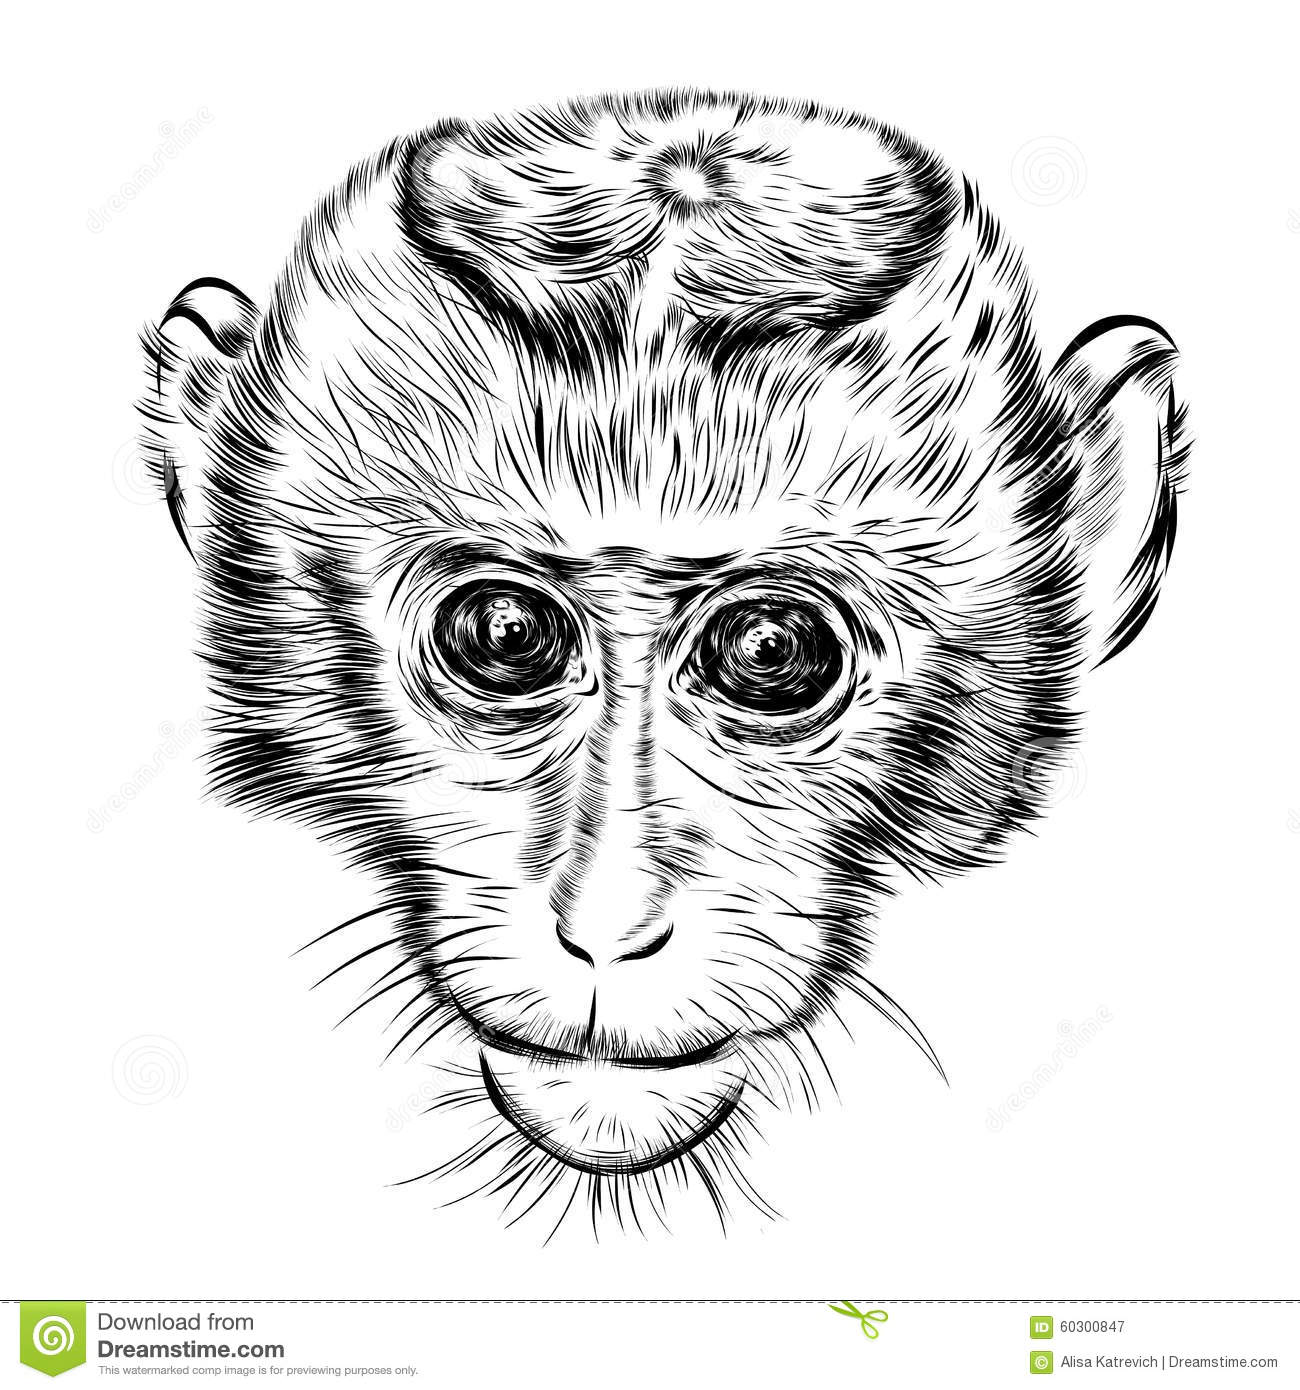 Line Drawing Monkey Face : Sketch monkey face hand drawn doodle vector stock